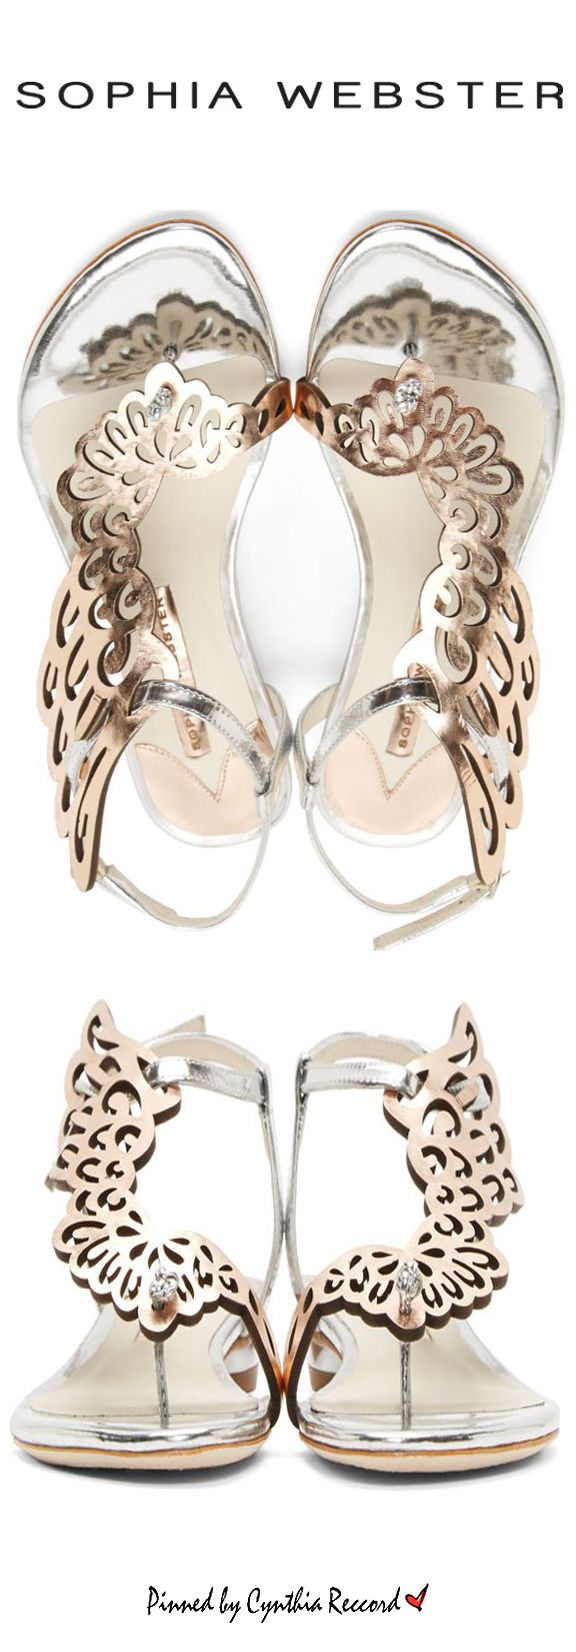 Sophia Webster Rose Gold & Silver Wing Seraphina Sandals | SS 2015 | cynthia reccord | flats & sandals